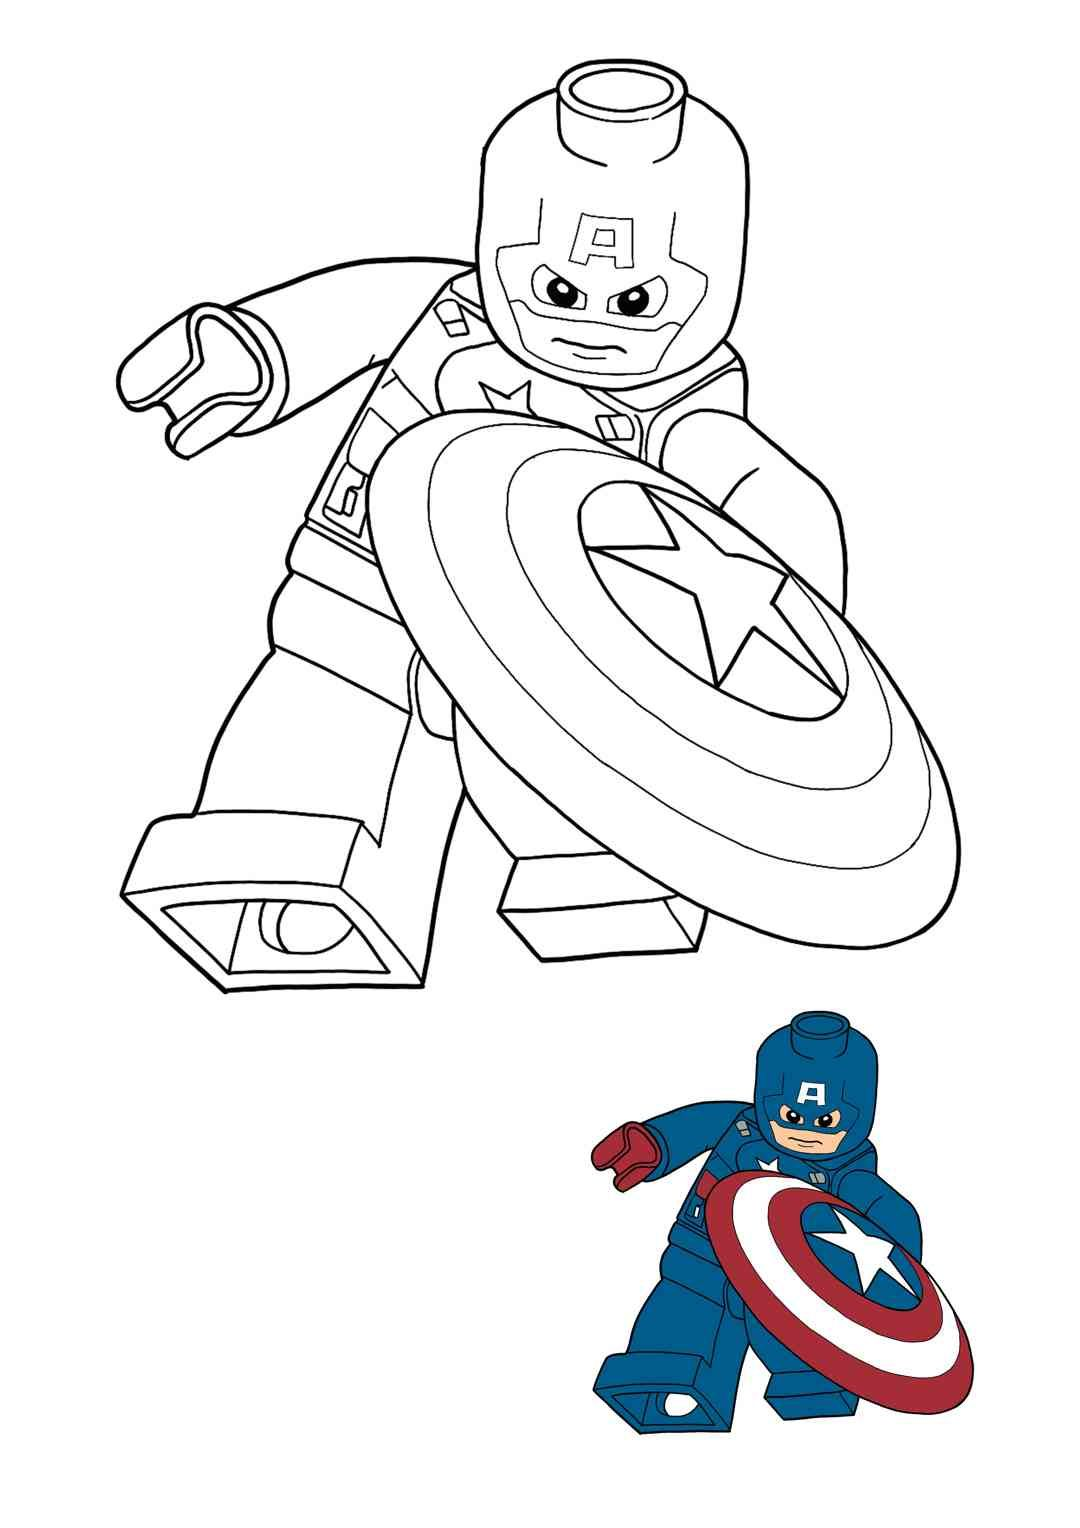 Lego Captain America Coloring Pages Captain America Coloring Pages Free Printable Coloring Sheets Free Printable Coloring